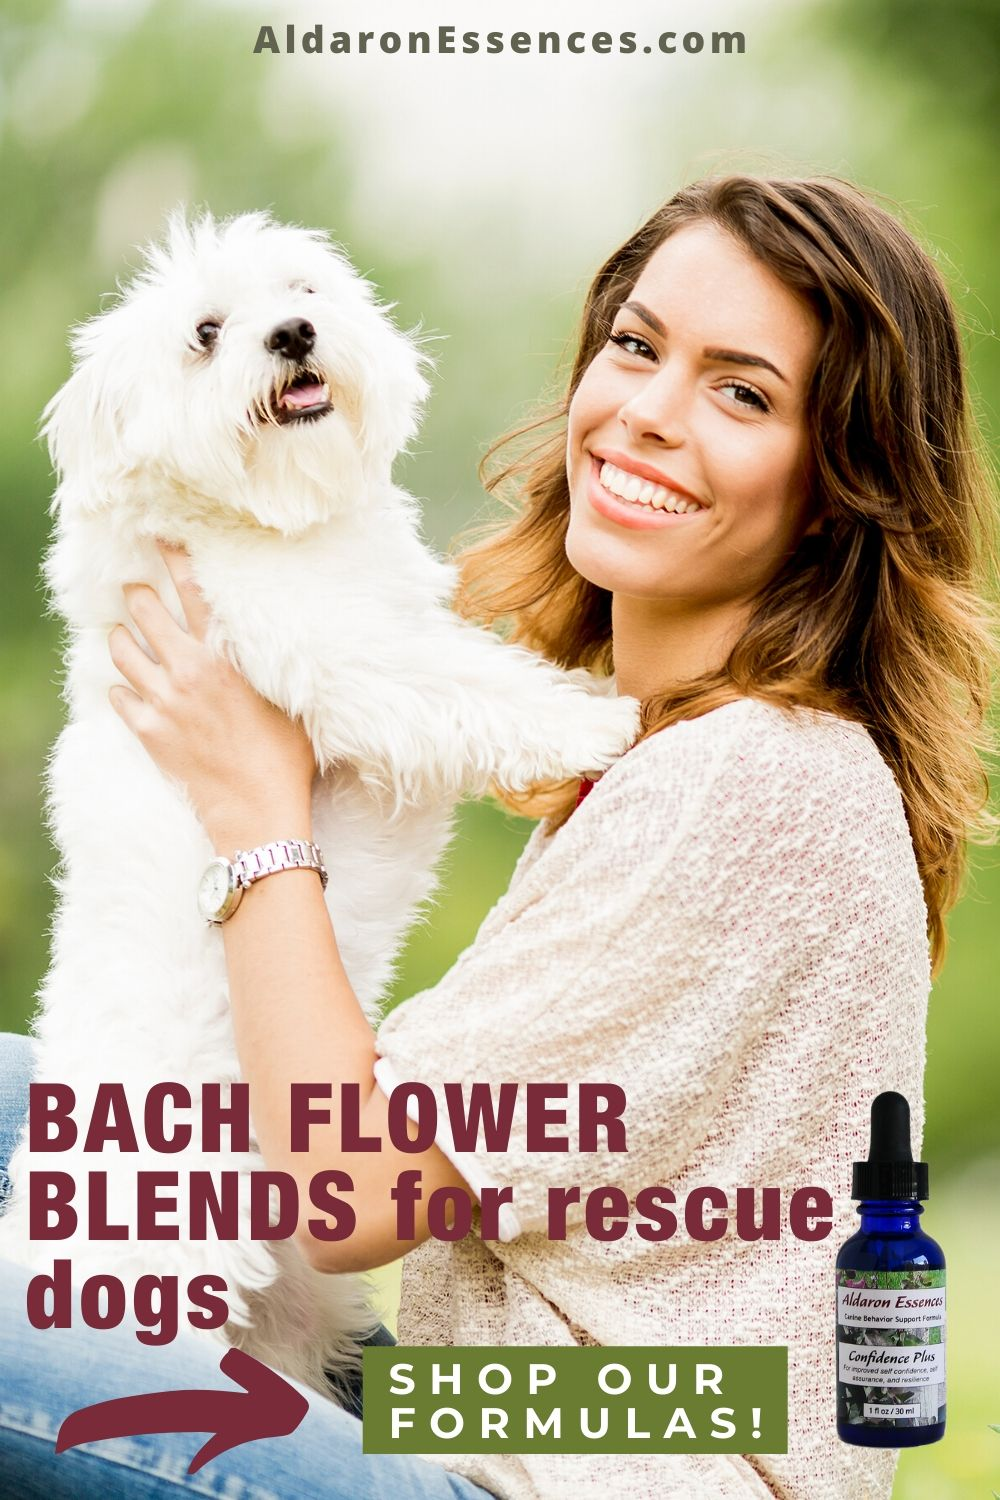 bach-flower-blends-rescue-dogs